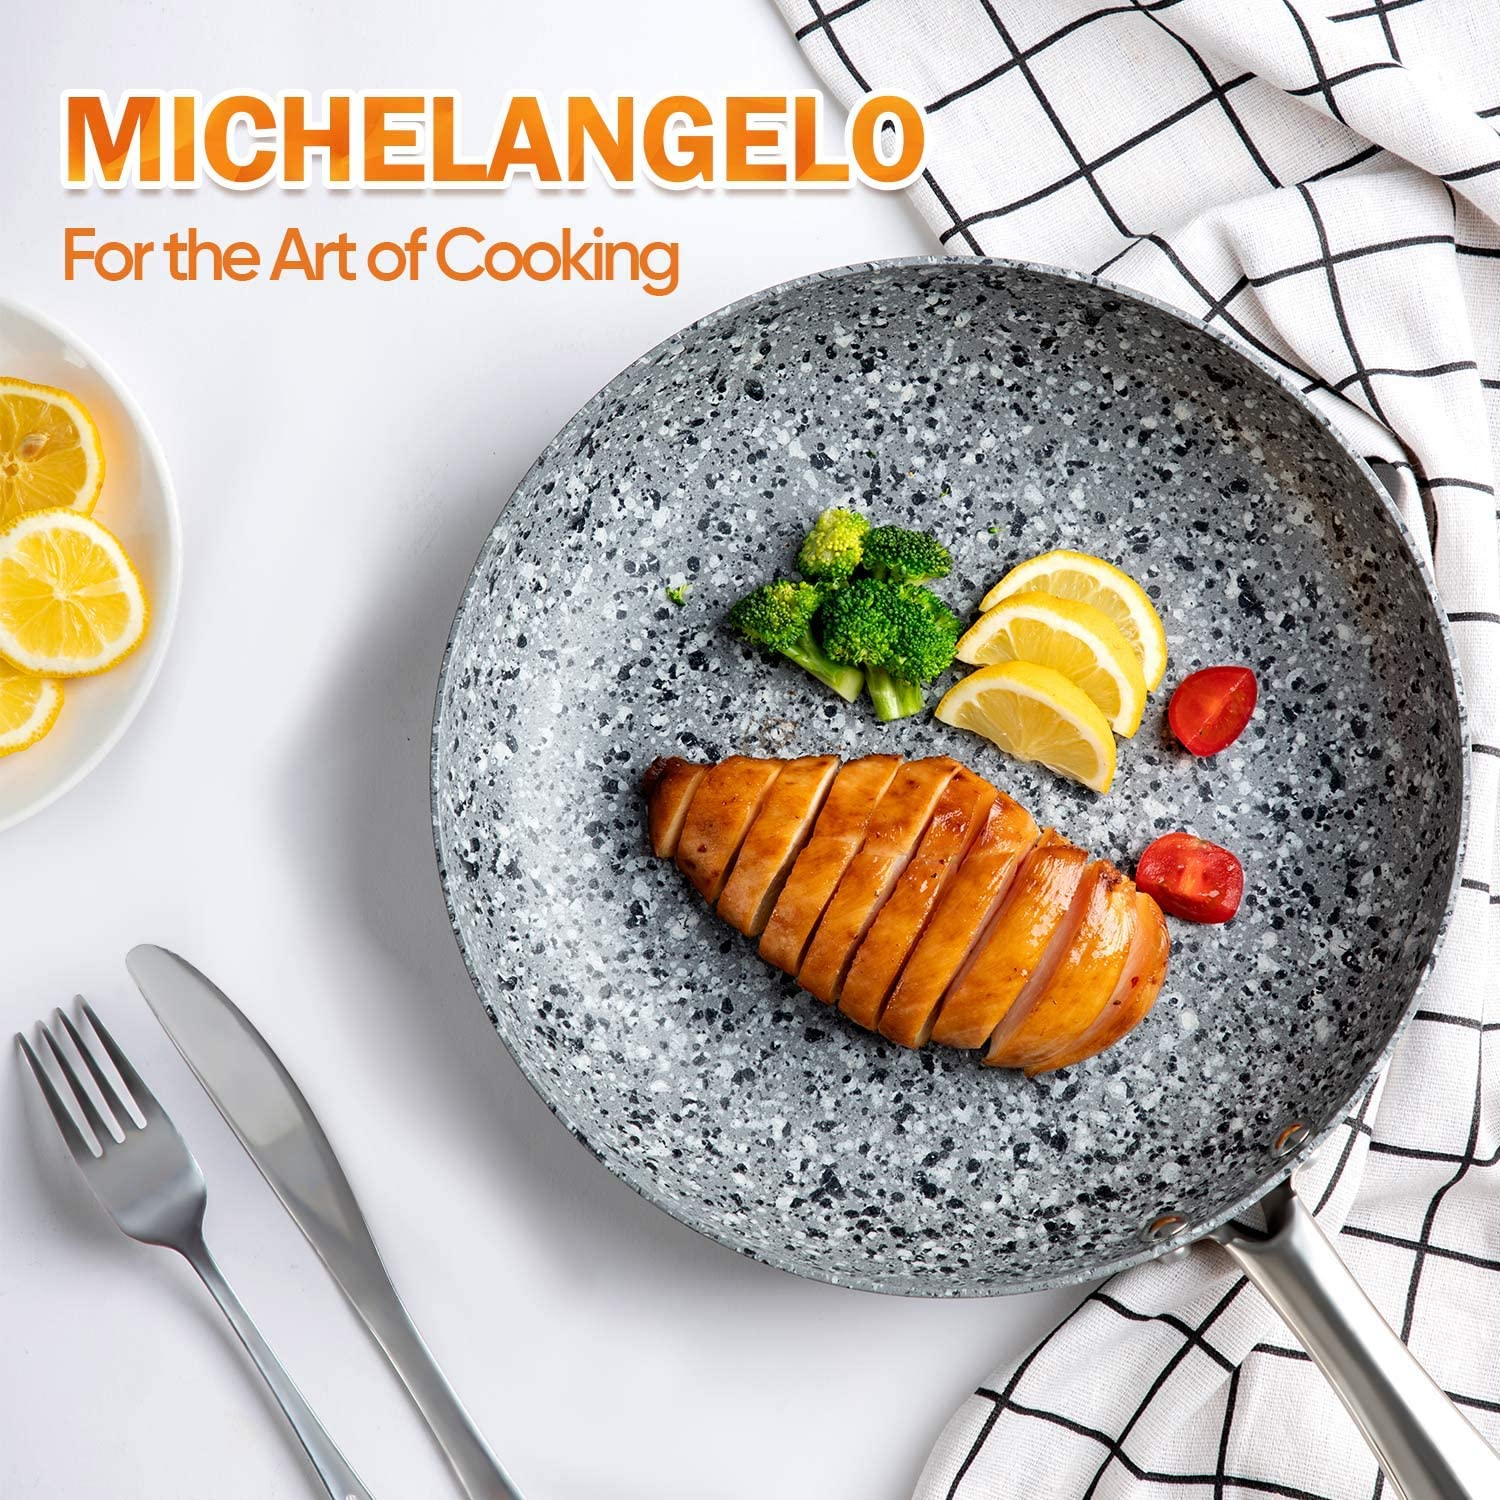 """MICHELANGELO Frying Pan Set with Lid, 8"""" & 10"""" Granite Frying Pan Set with 100% APEO & PFOA-Free Stone Non Stick Coating, Granite Skillet Set with Lid, Nonstick Frying Pans 2 Piece - 8""""+10"""": Kitchen & Dining"""